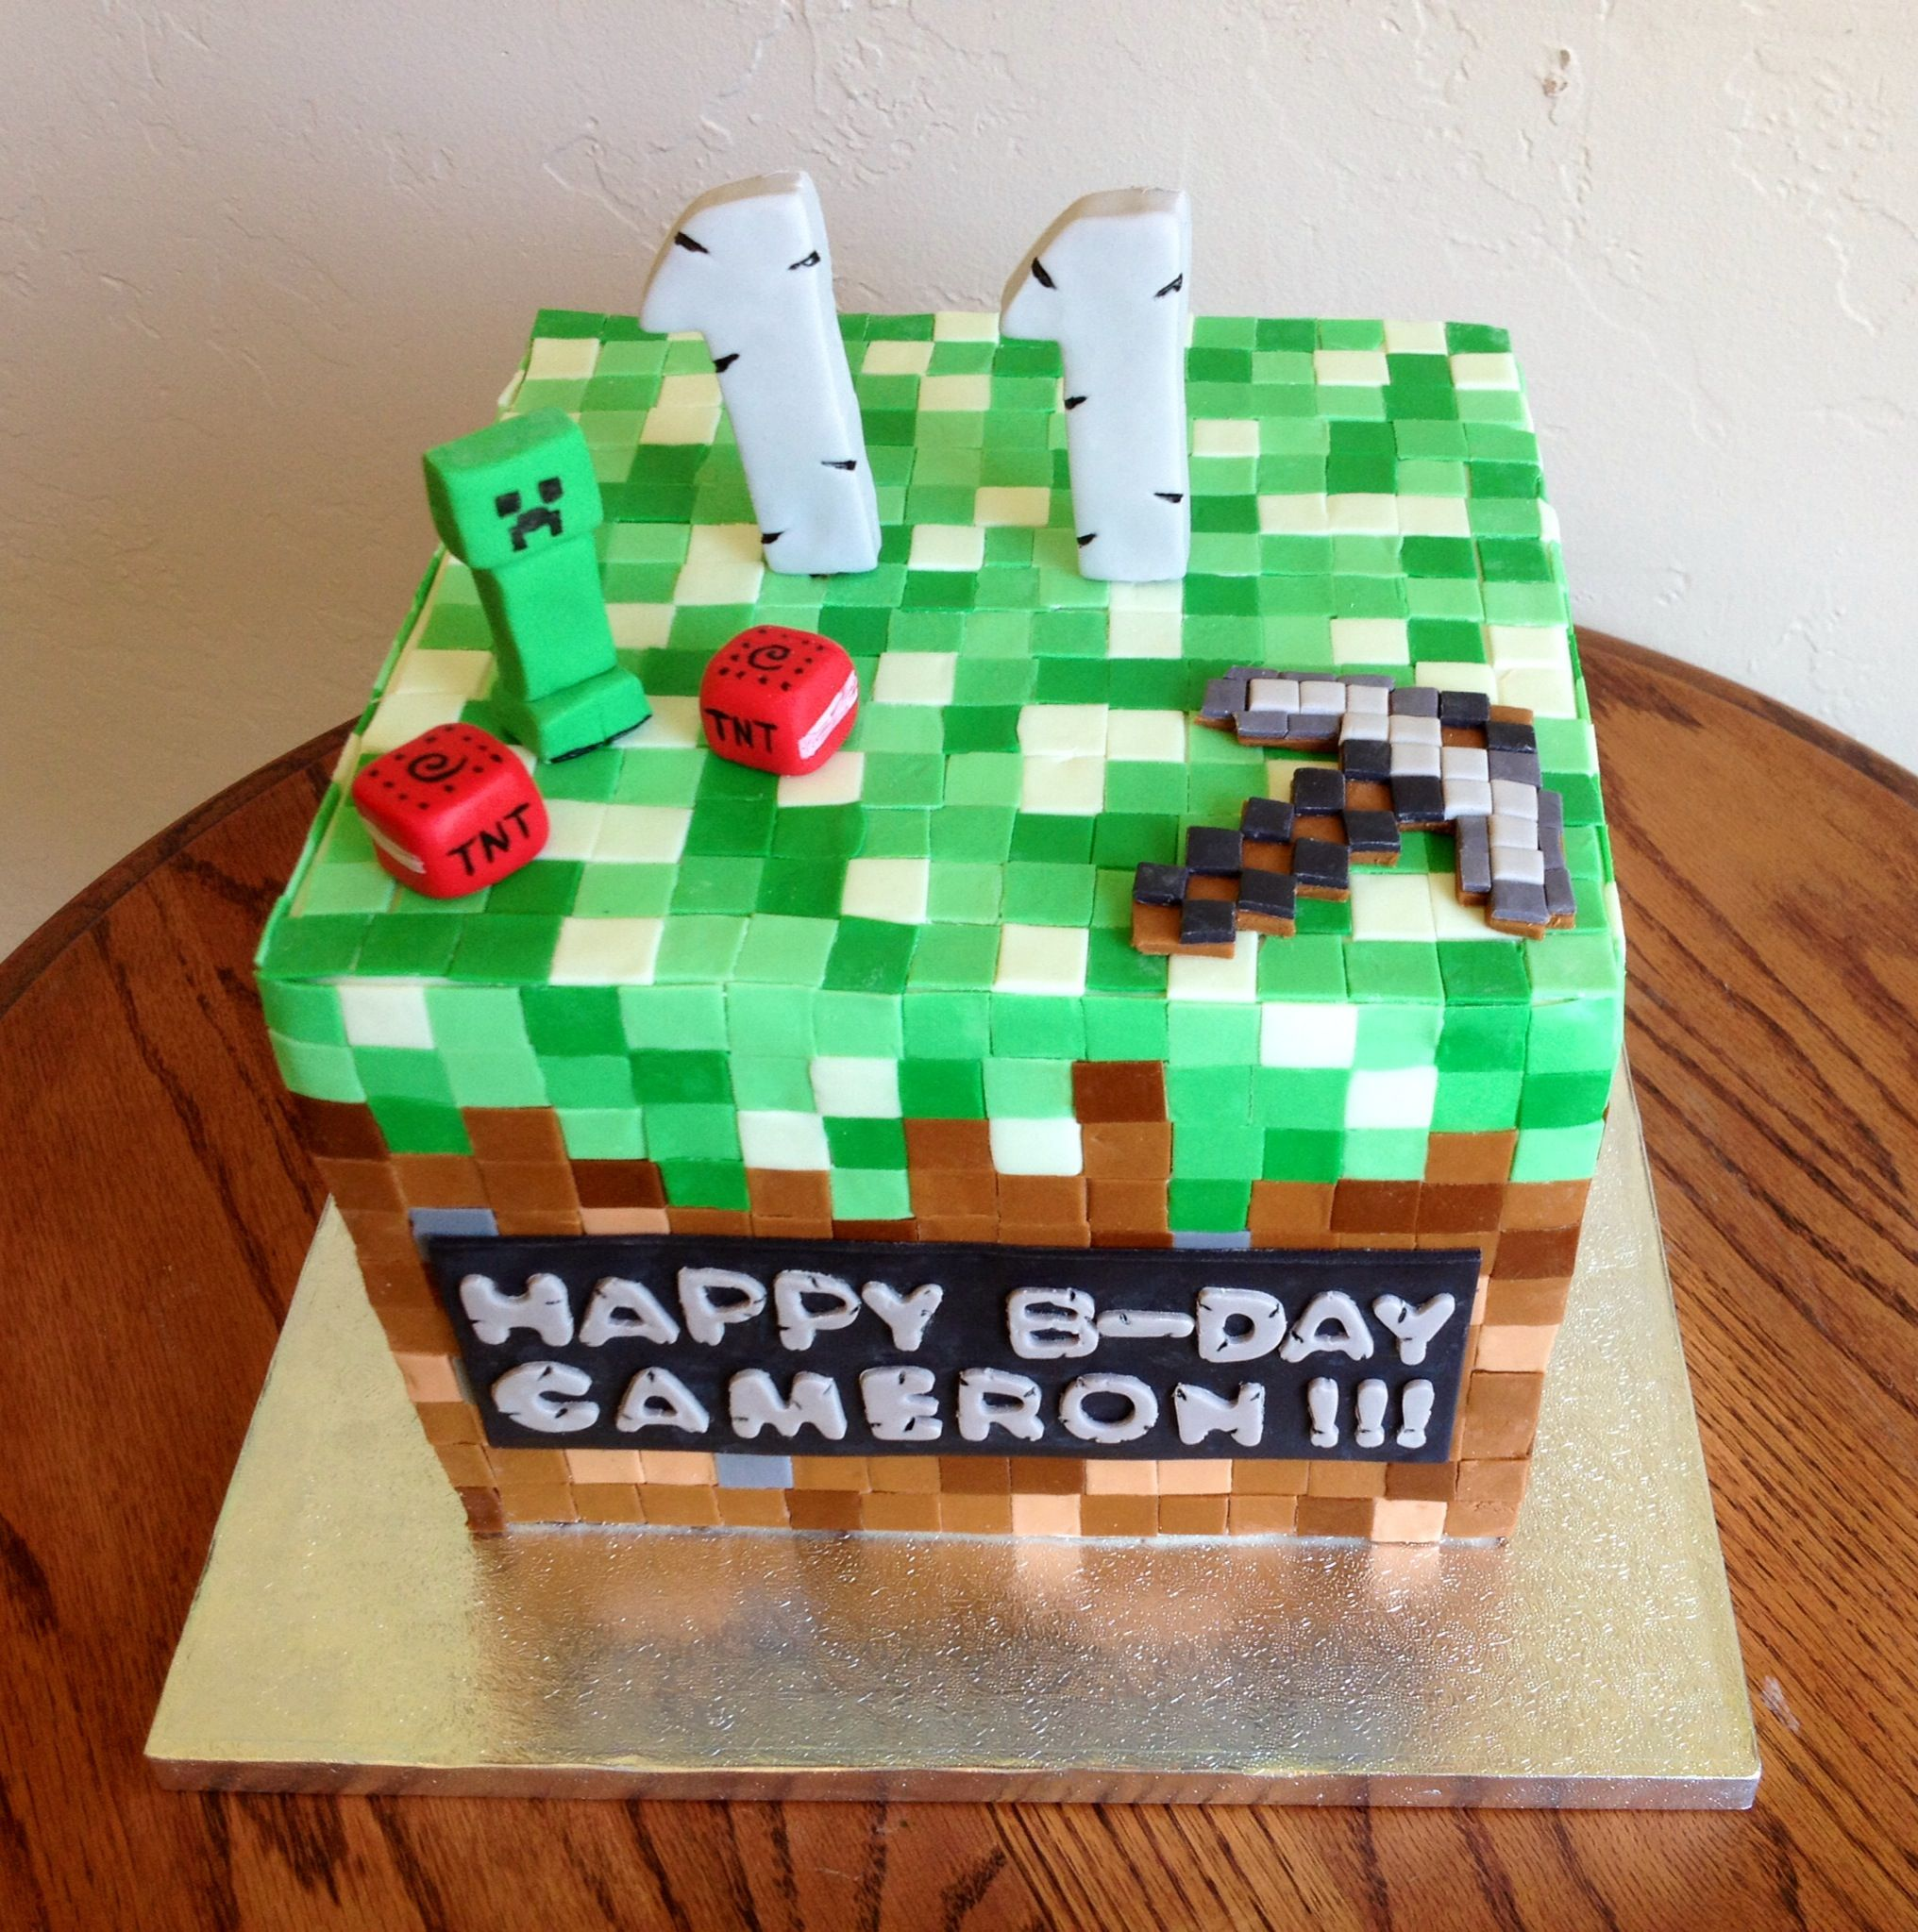 Minecraft Cake for an 11 year old birthday boy. He was so